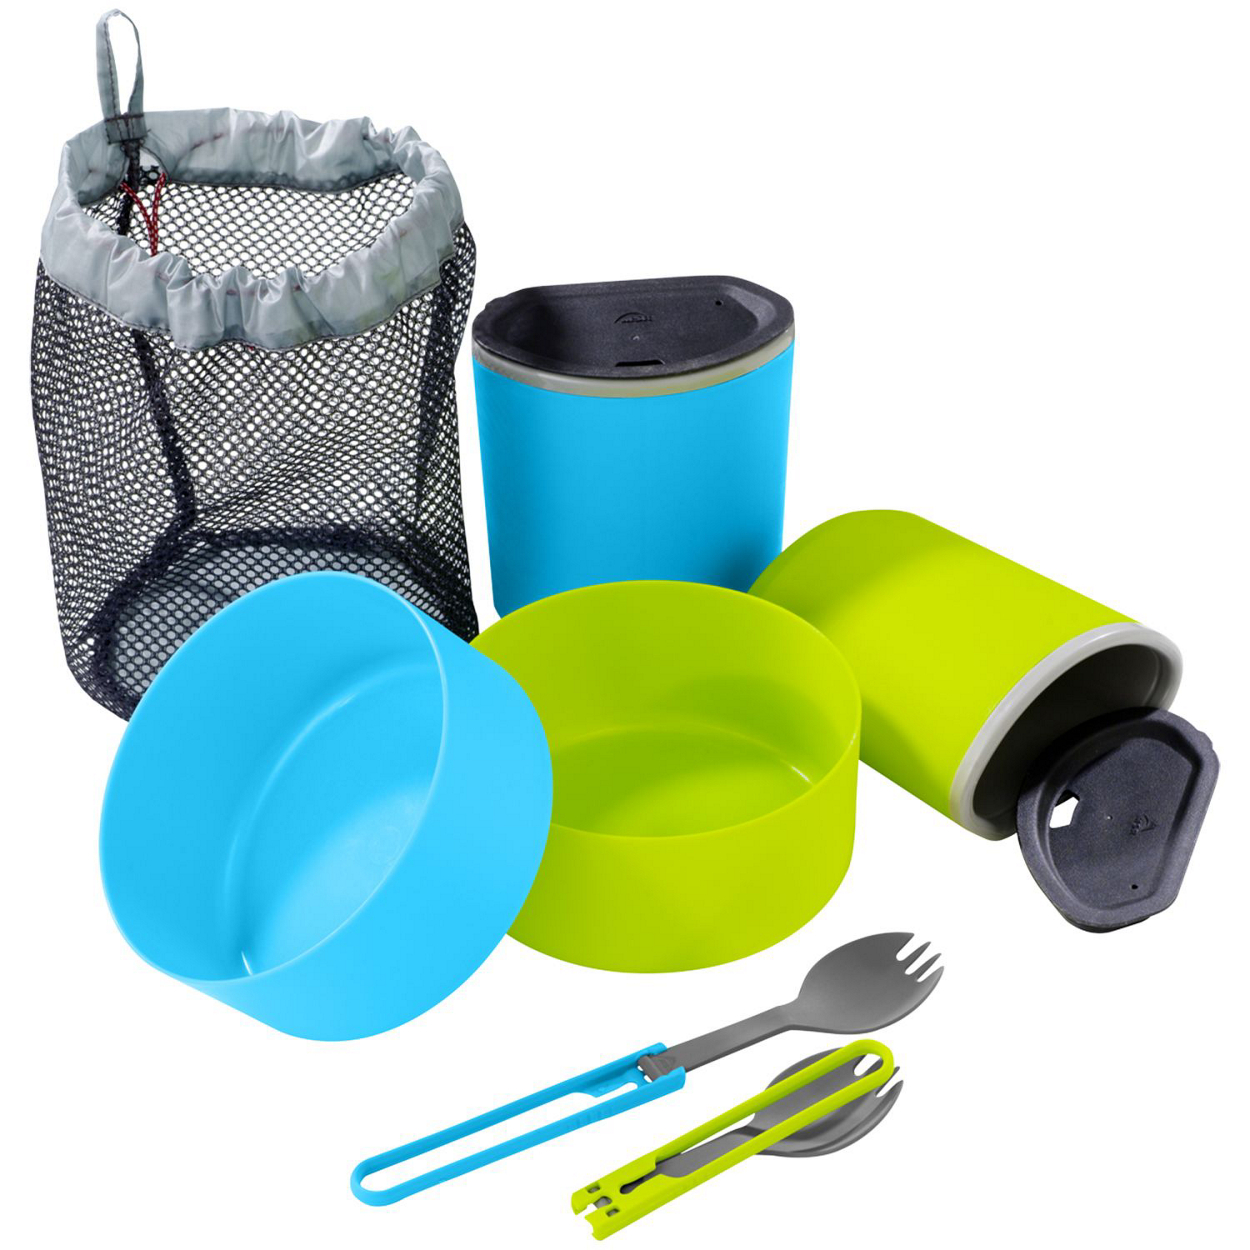 Image of 2-Person Mess Kit